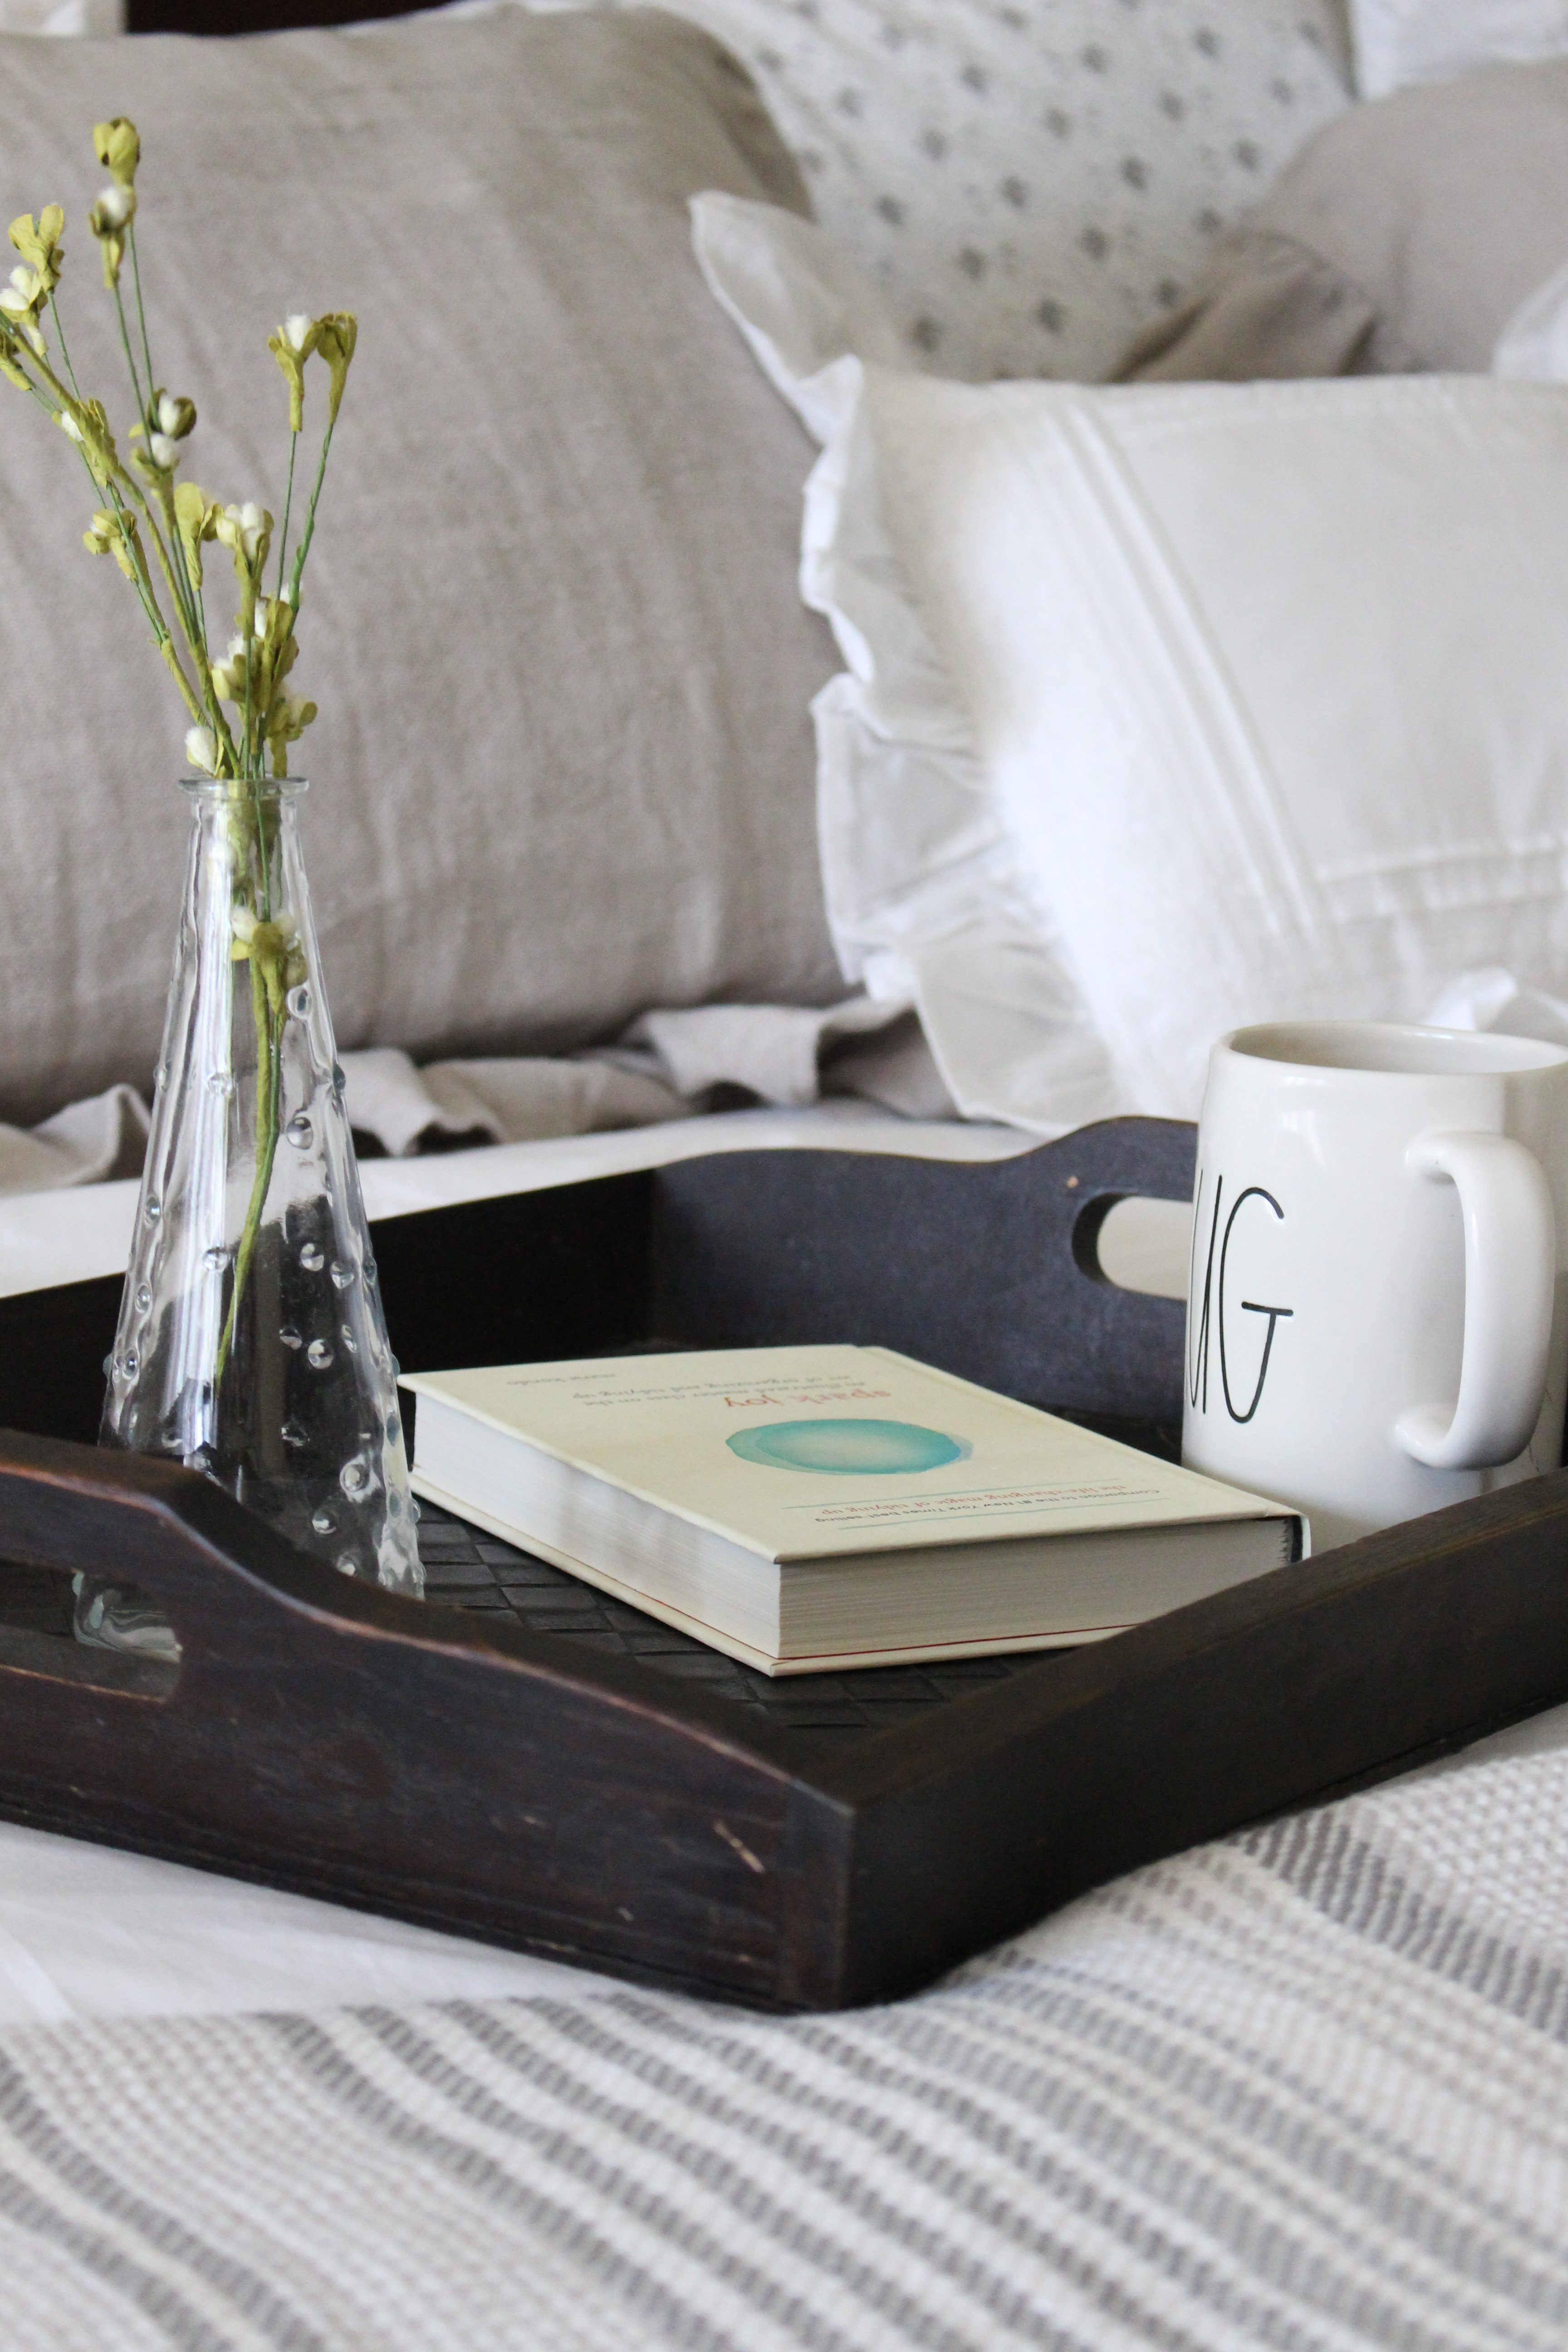 Bedroom Refresh- bed linens- white bed linens- annie selke- white sheets- master bedroom refresh- relaxing retreat- bedroom redesign